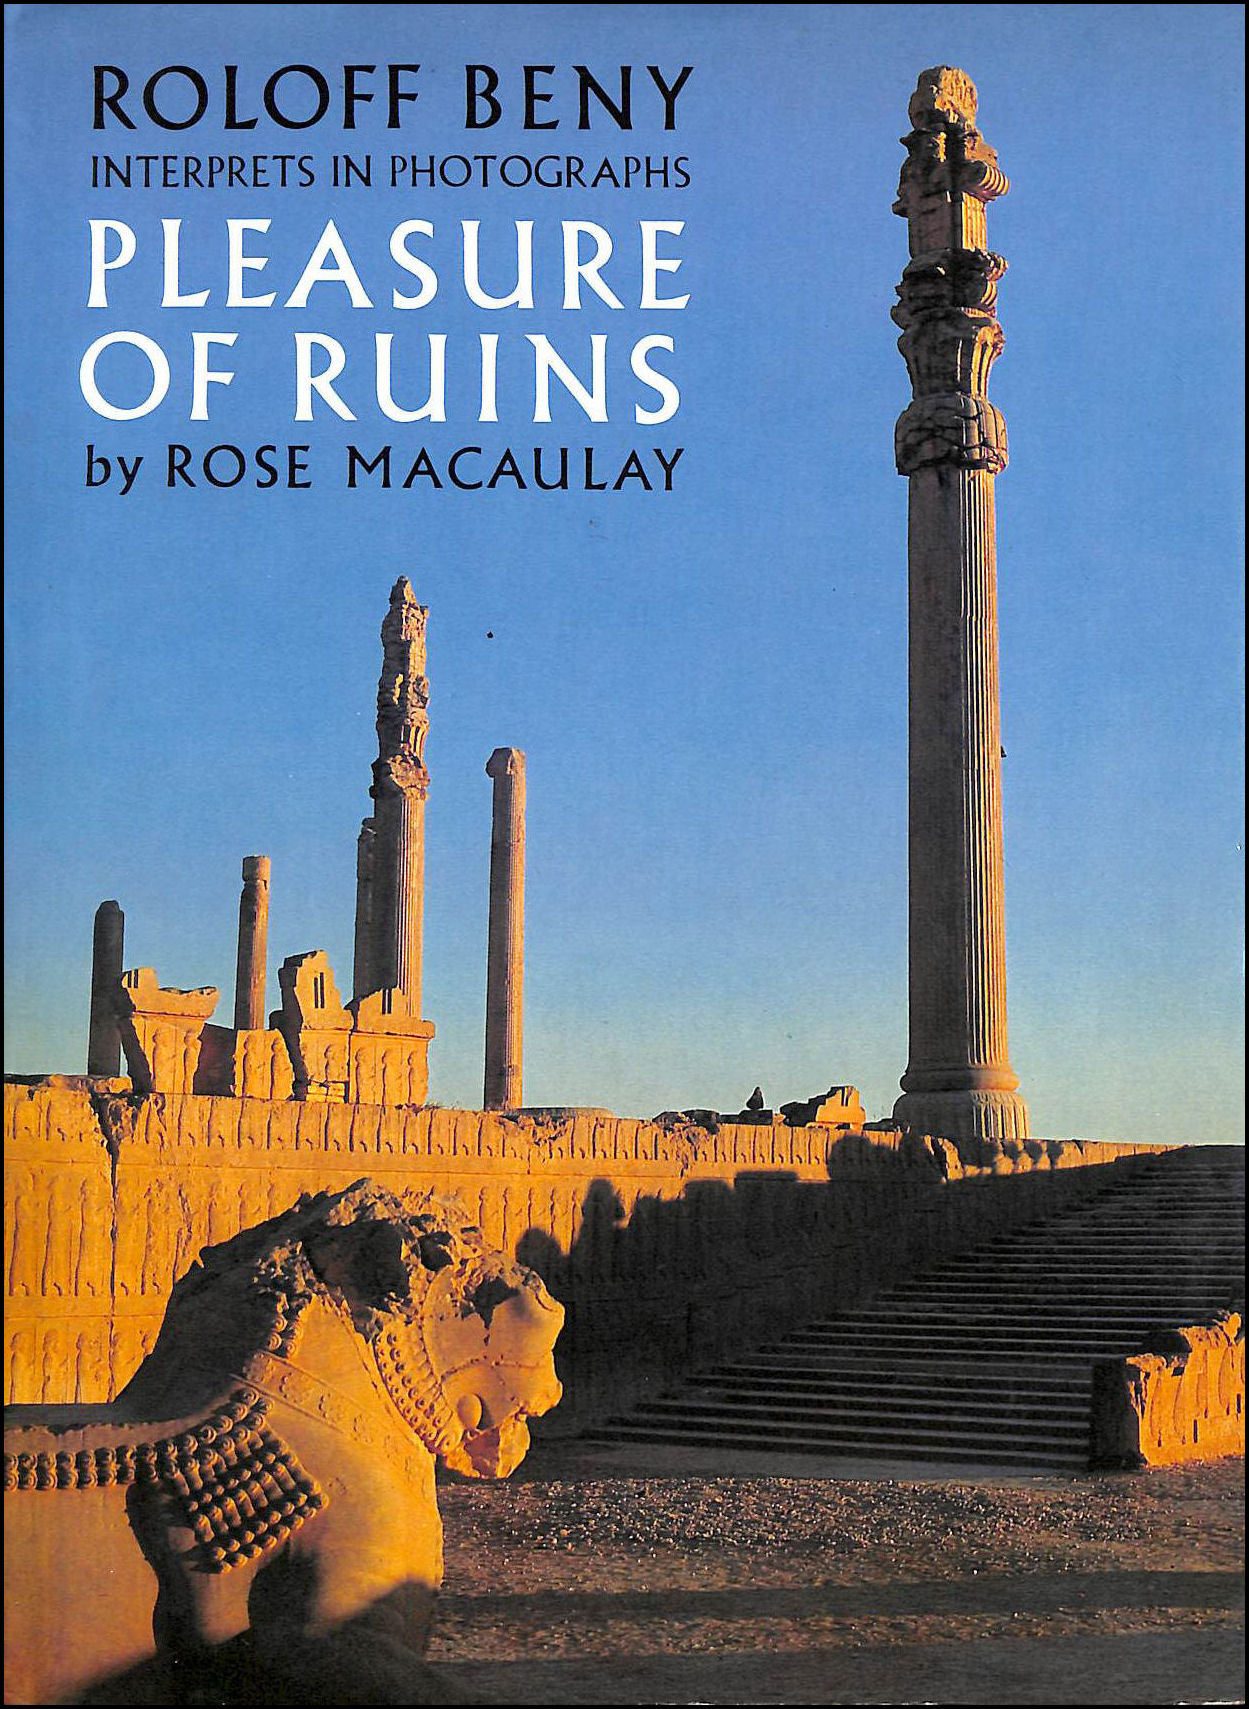 Image for Roloff Beny Interprets in Photographs Pleasure of Ruins by Rose Macaulay